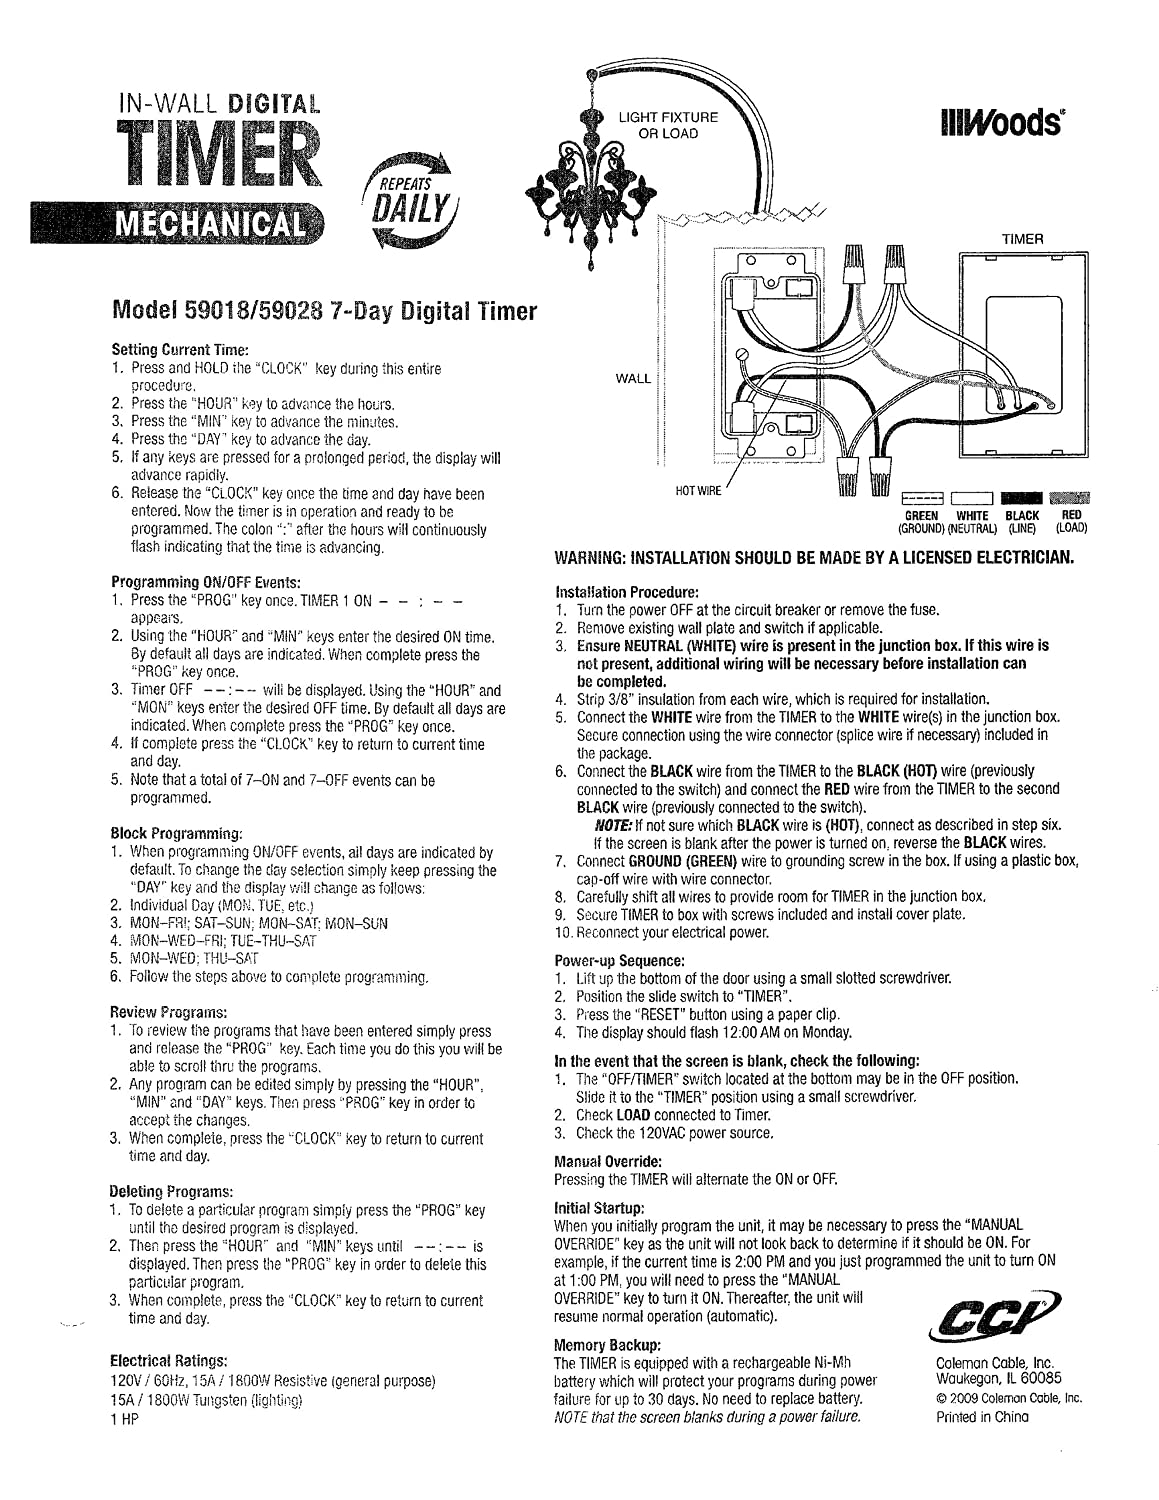 wiring diagram for woods 7 day programmable digital timer